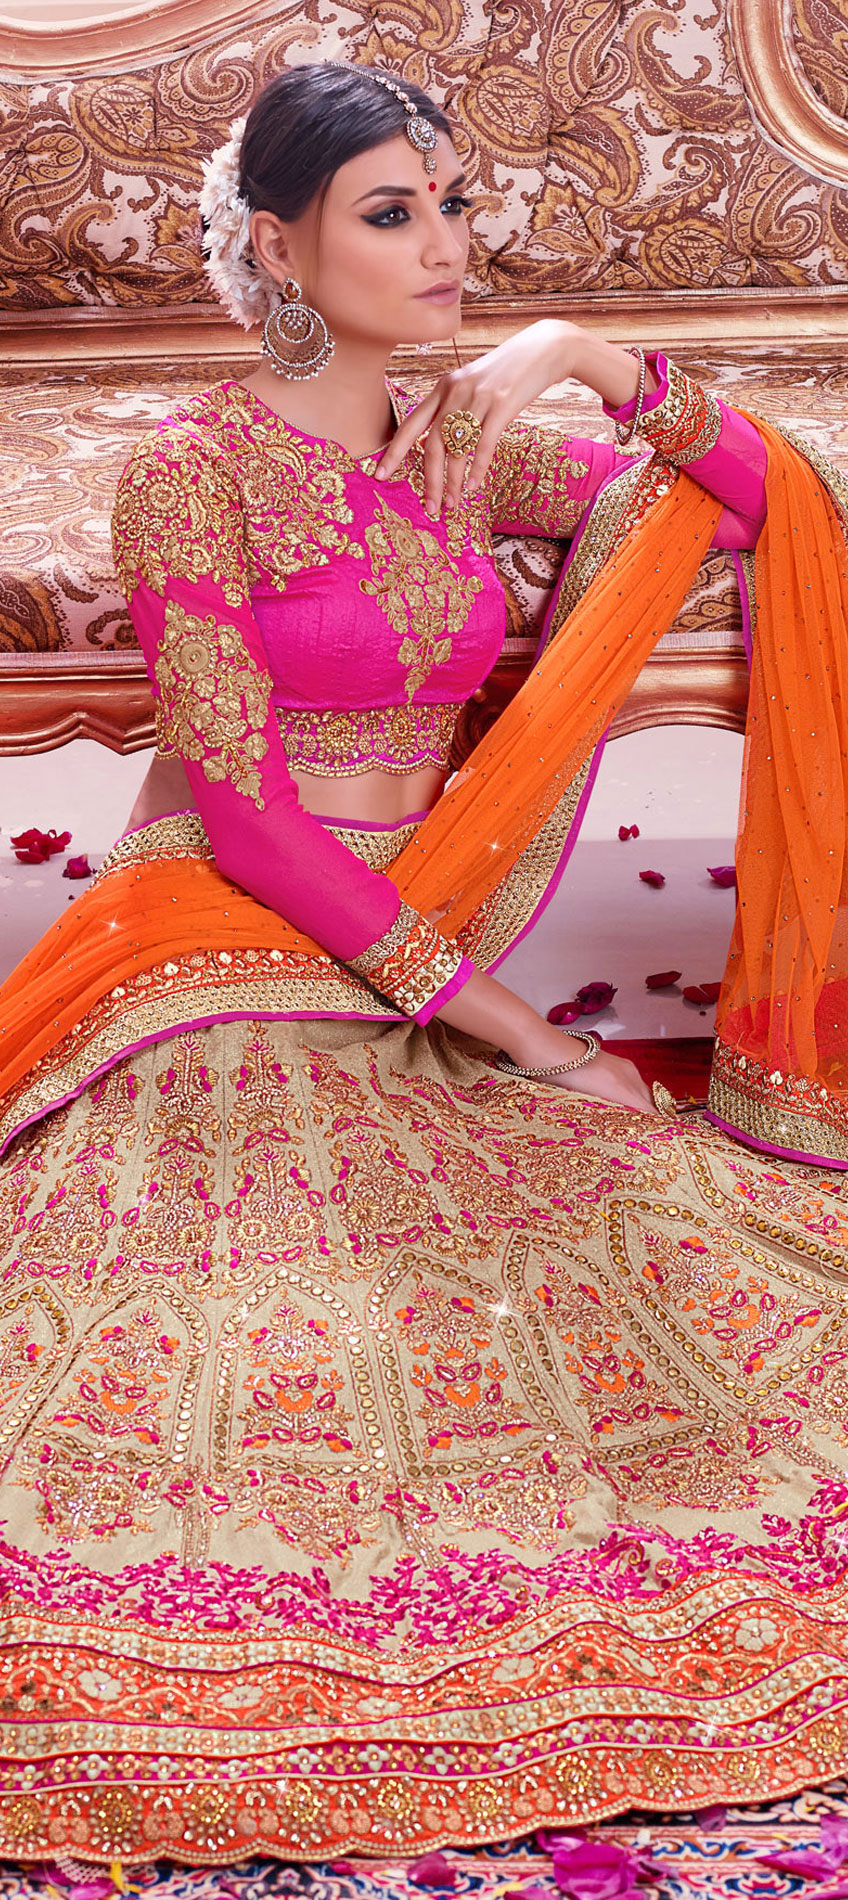 193777: Beige and Brown color family Bridal Lehenga .